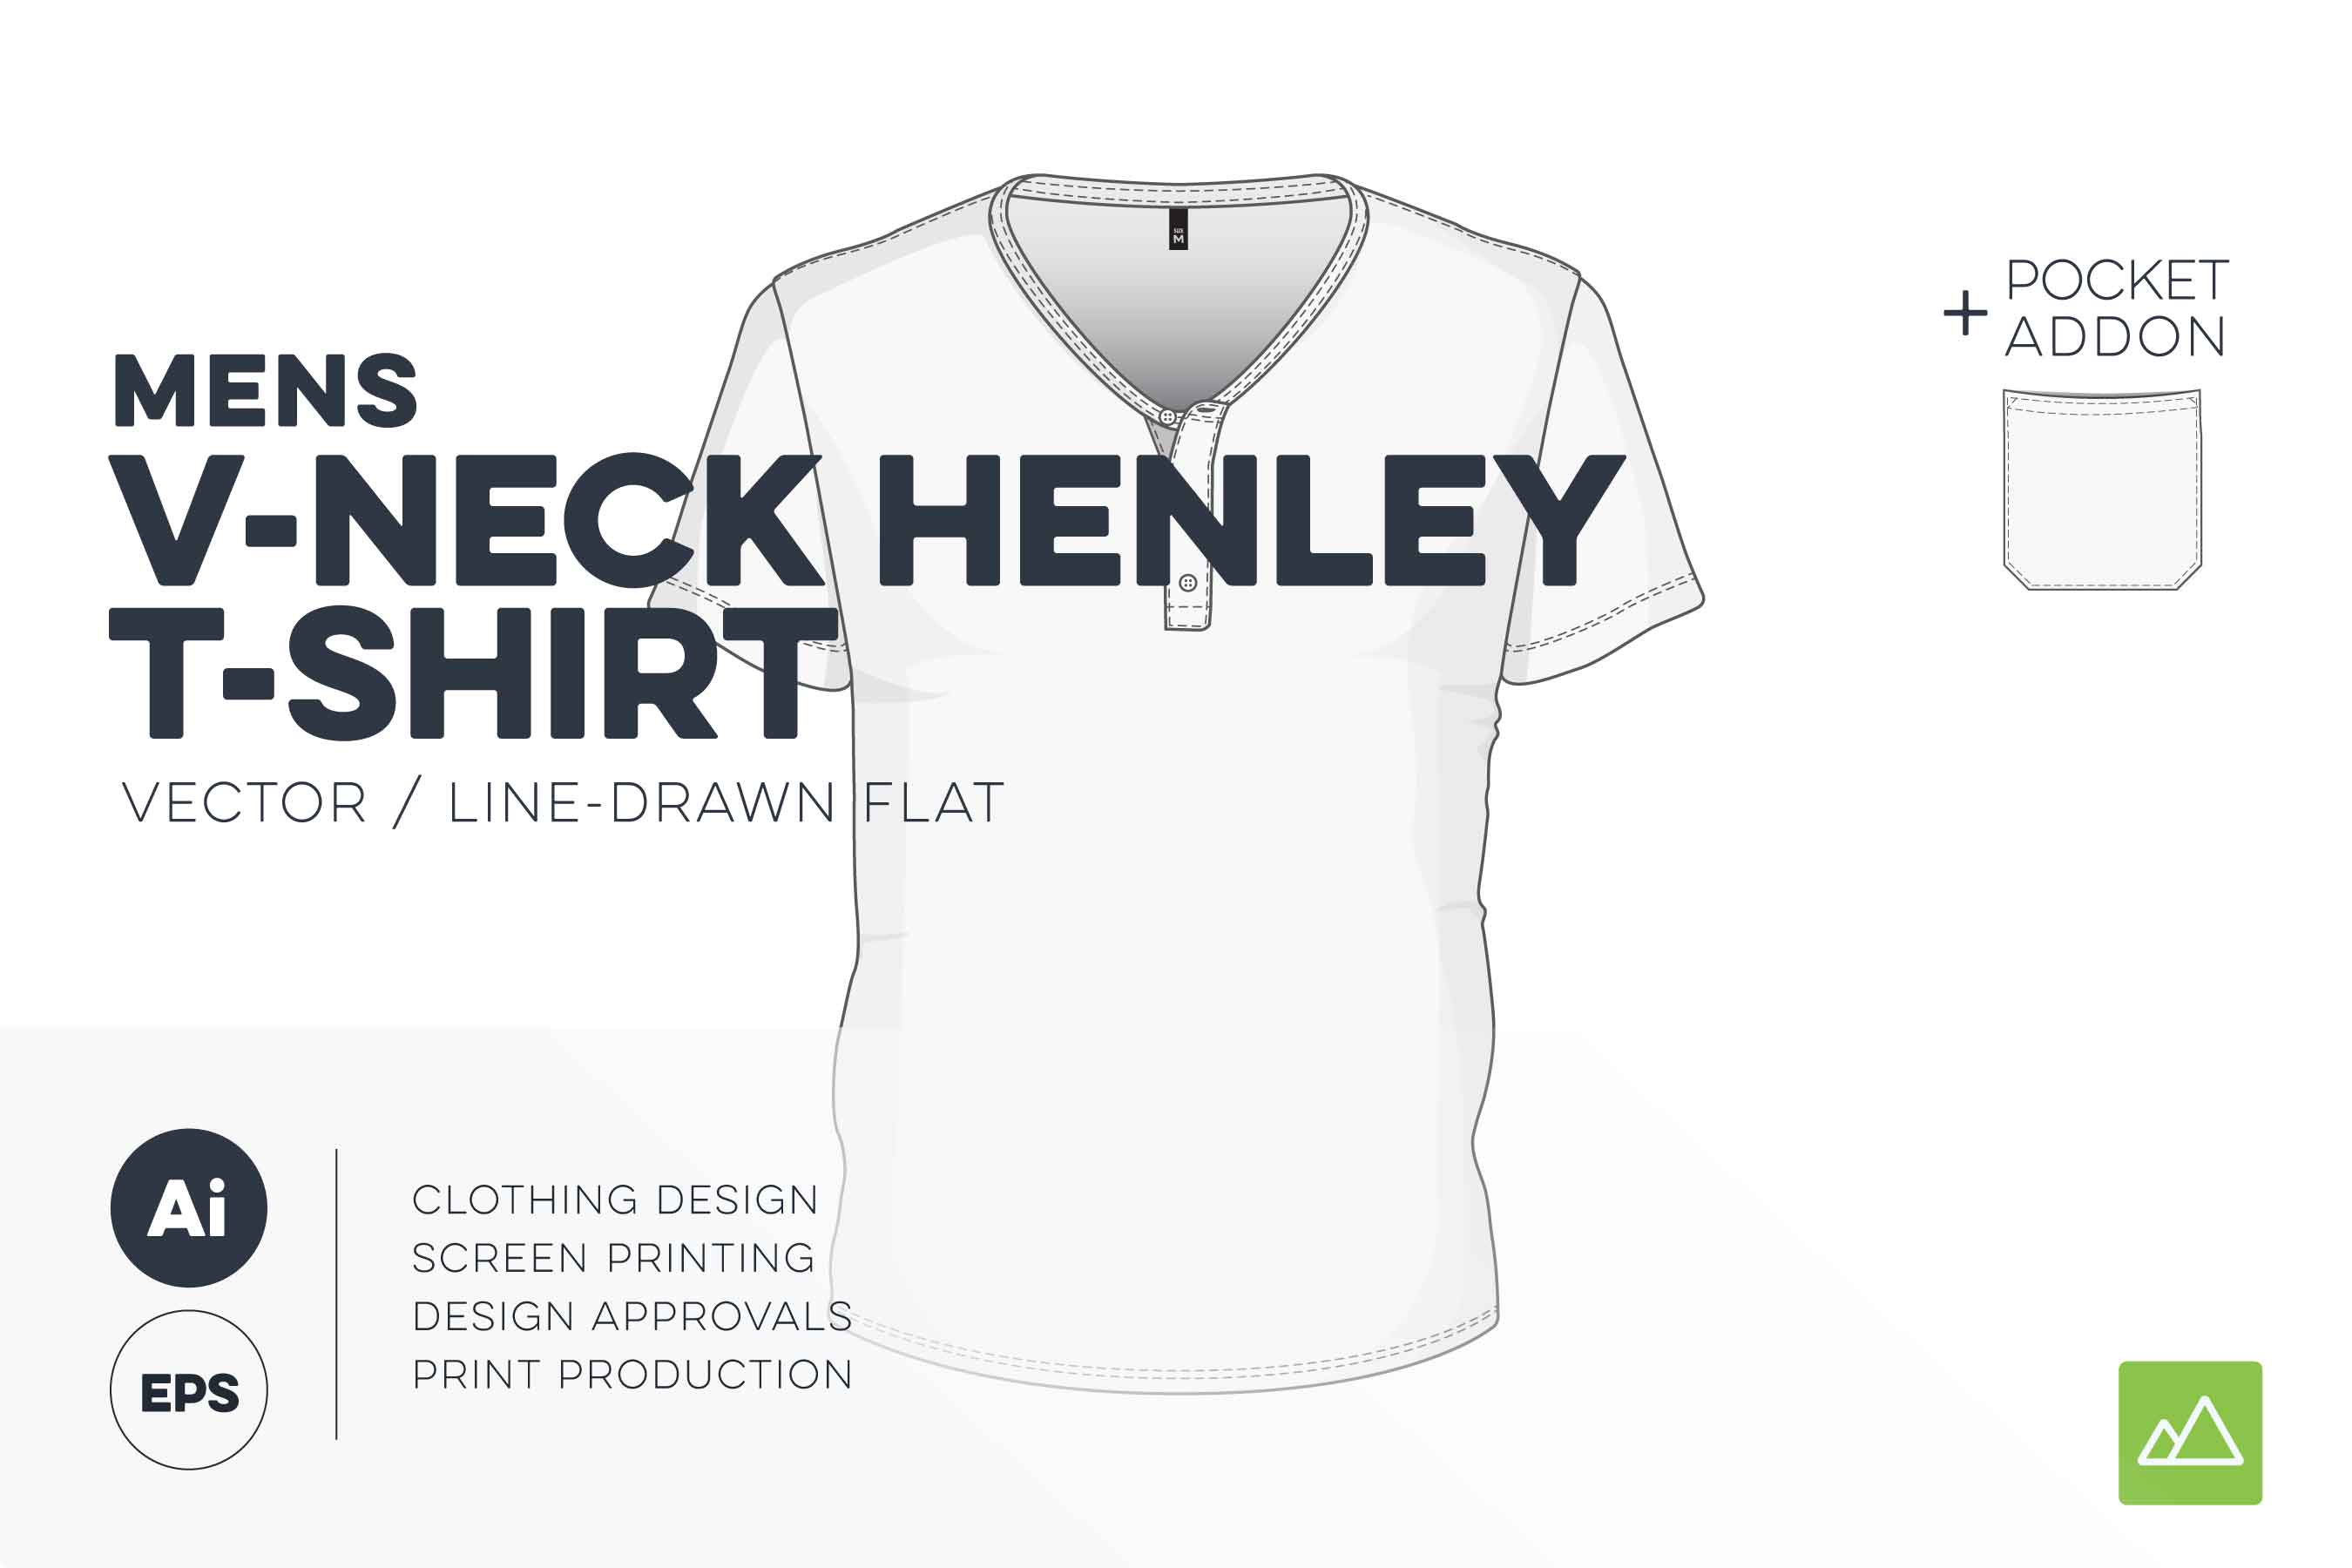 Mens v-neck henley t-shirt-template vector pack